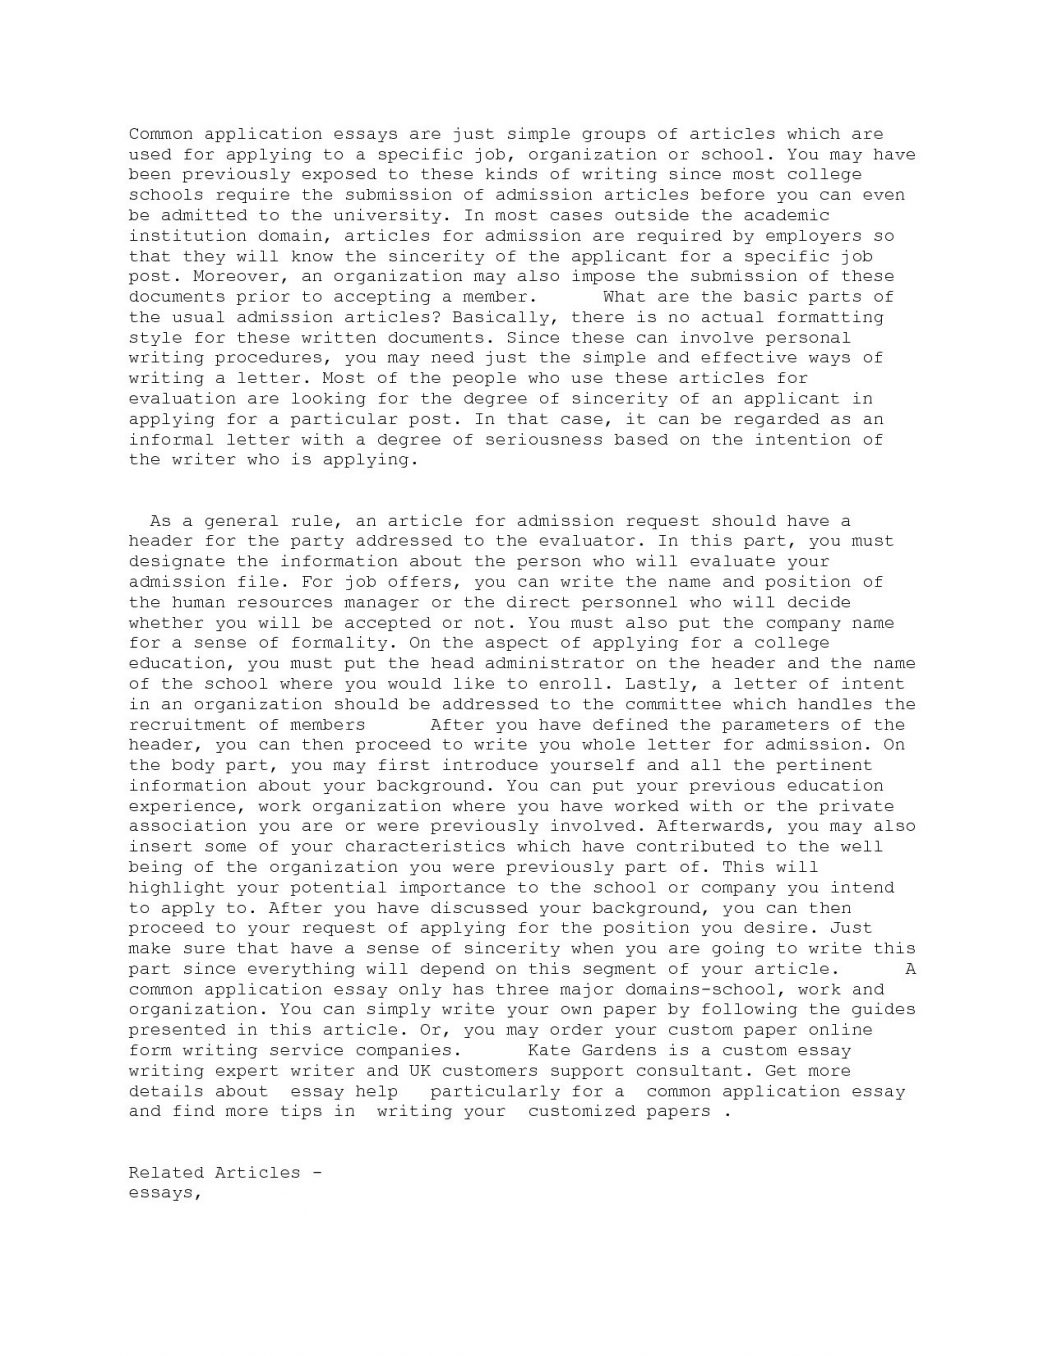 007 College Essay Examples Common App Writings And Essays Transfer Example Sample How To Wri Application Topics 1048x1356 Outstanding Ideas Option 2 2017 Full